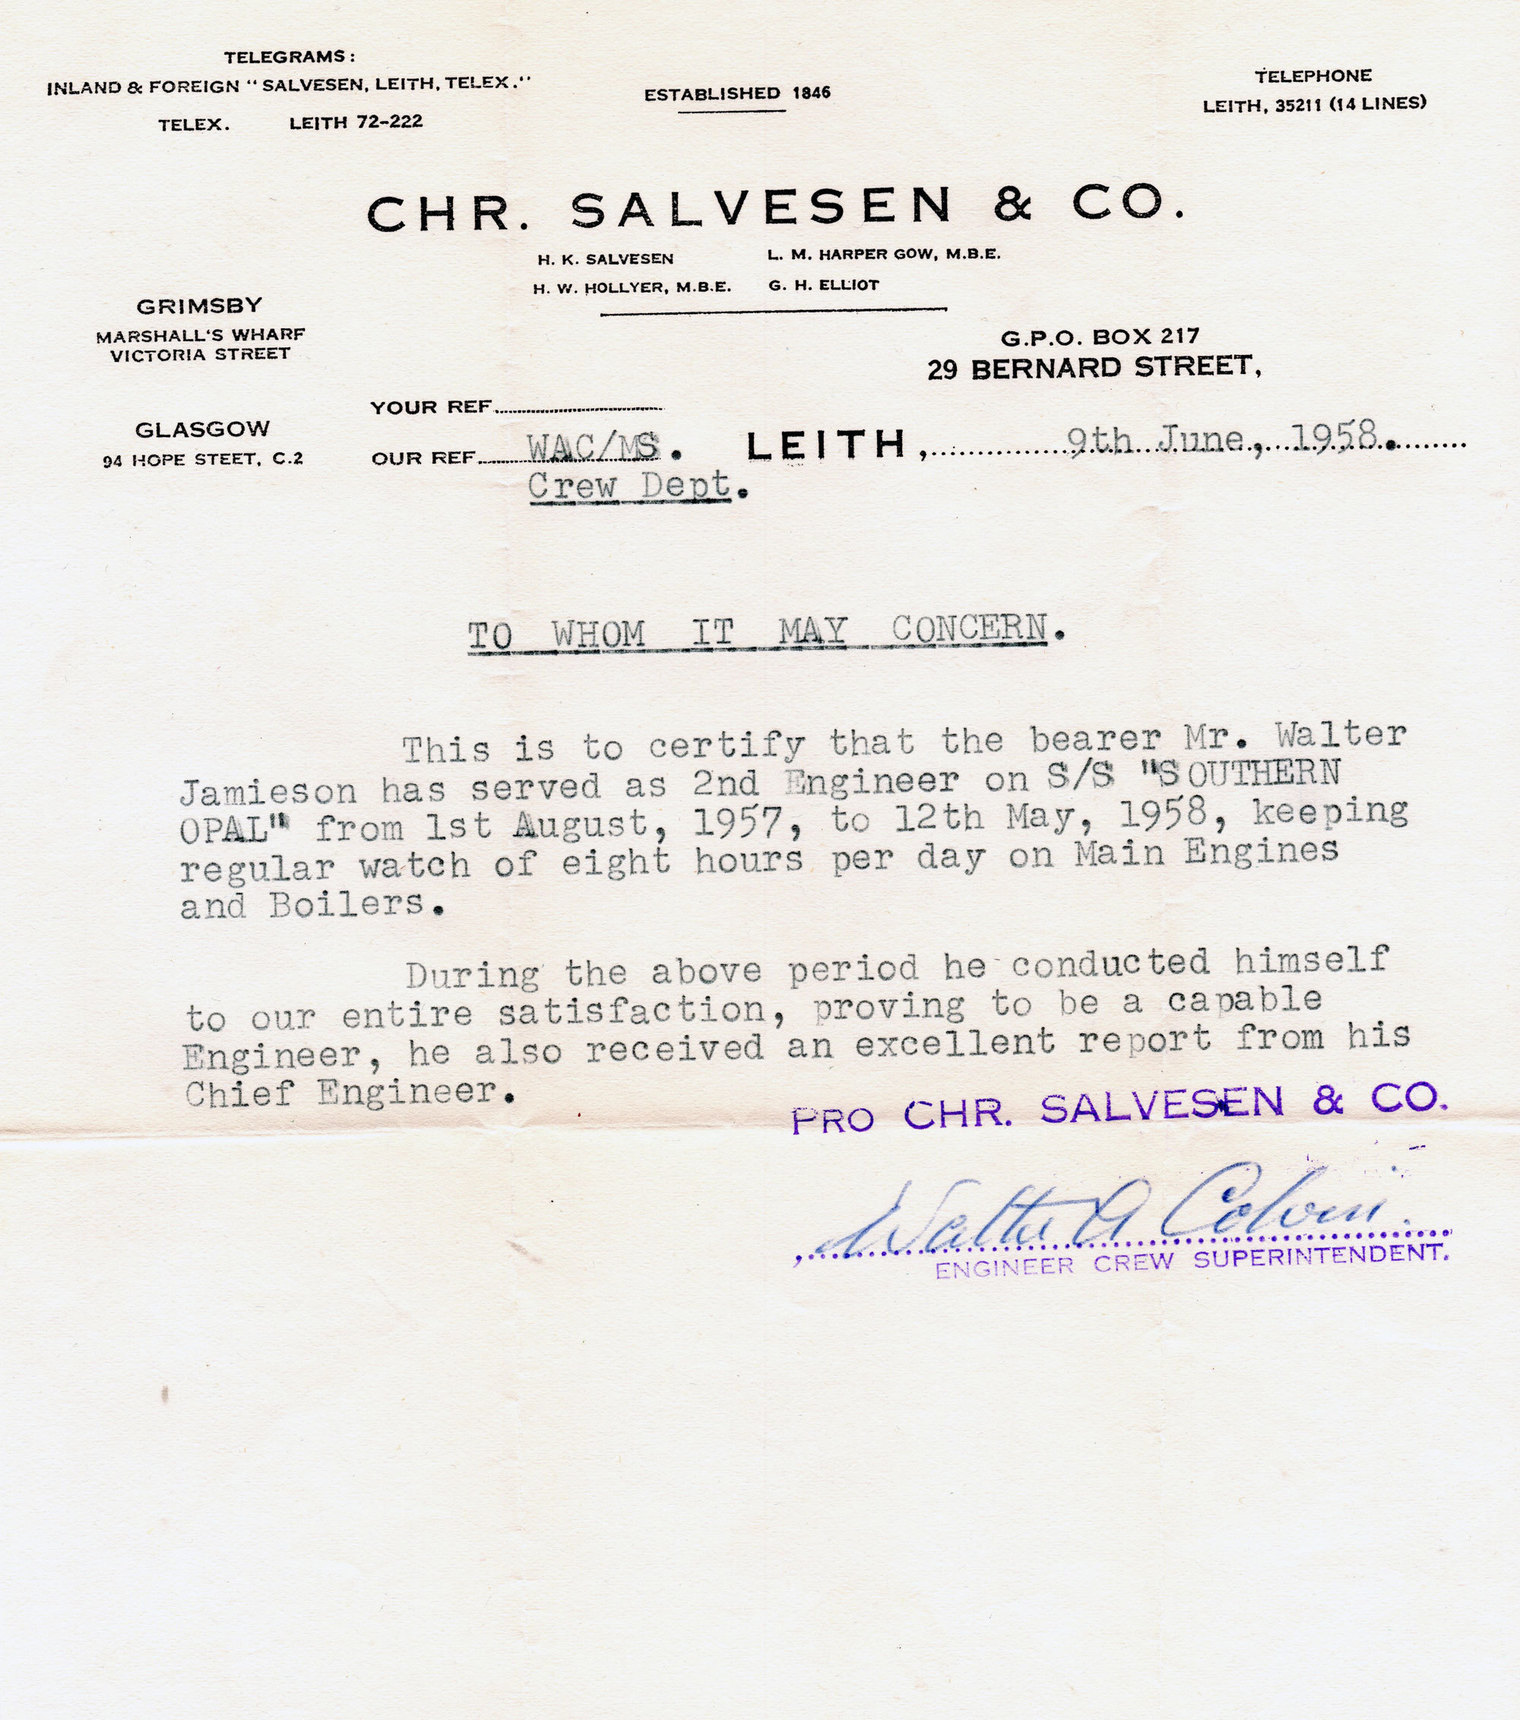 Reference Of Employment Letter For Engineer At Christian Salvesen 1958